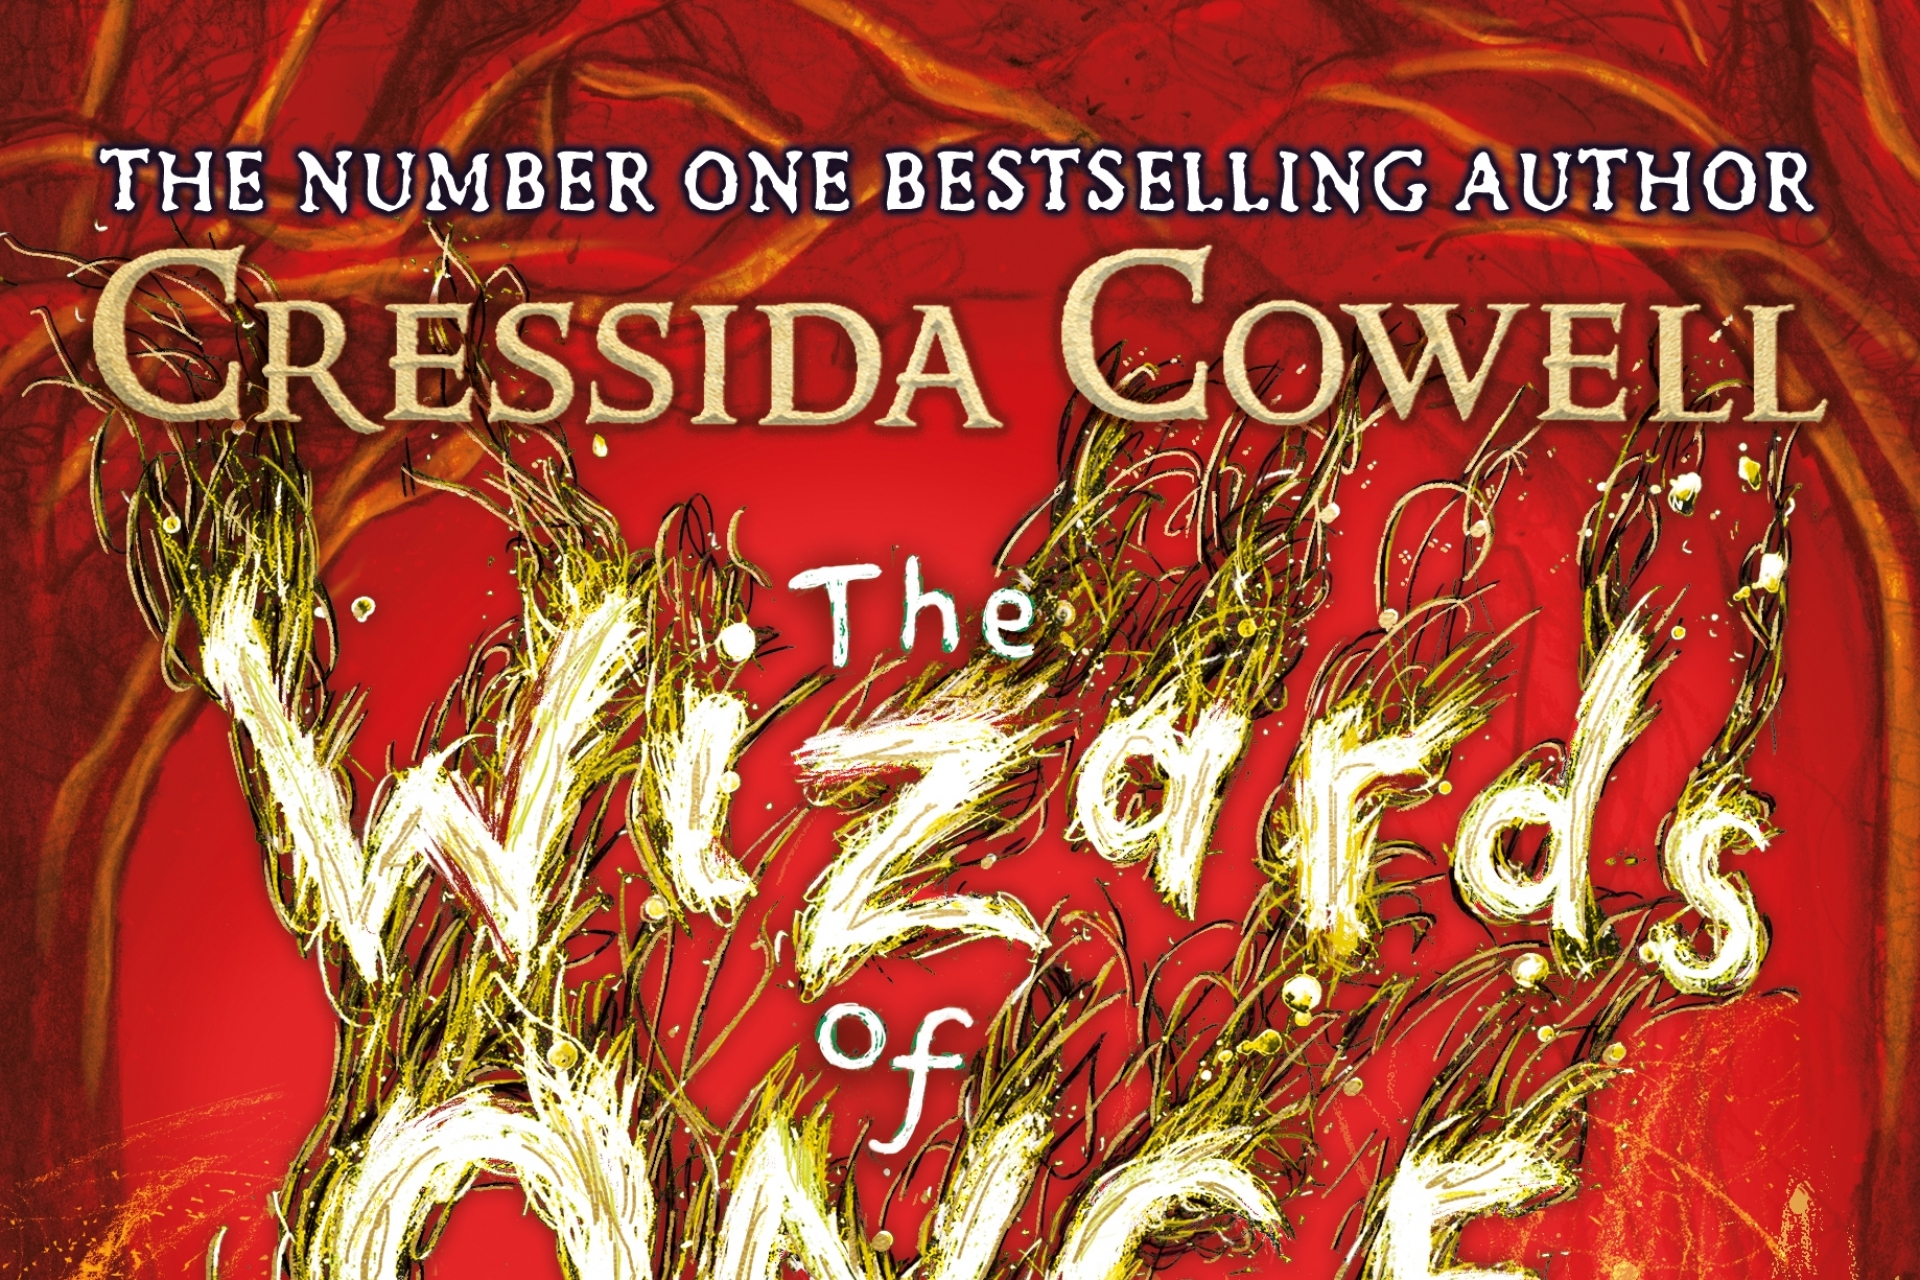 A Q&A with Children's Laureate, Cressida Cowell